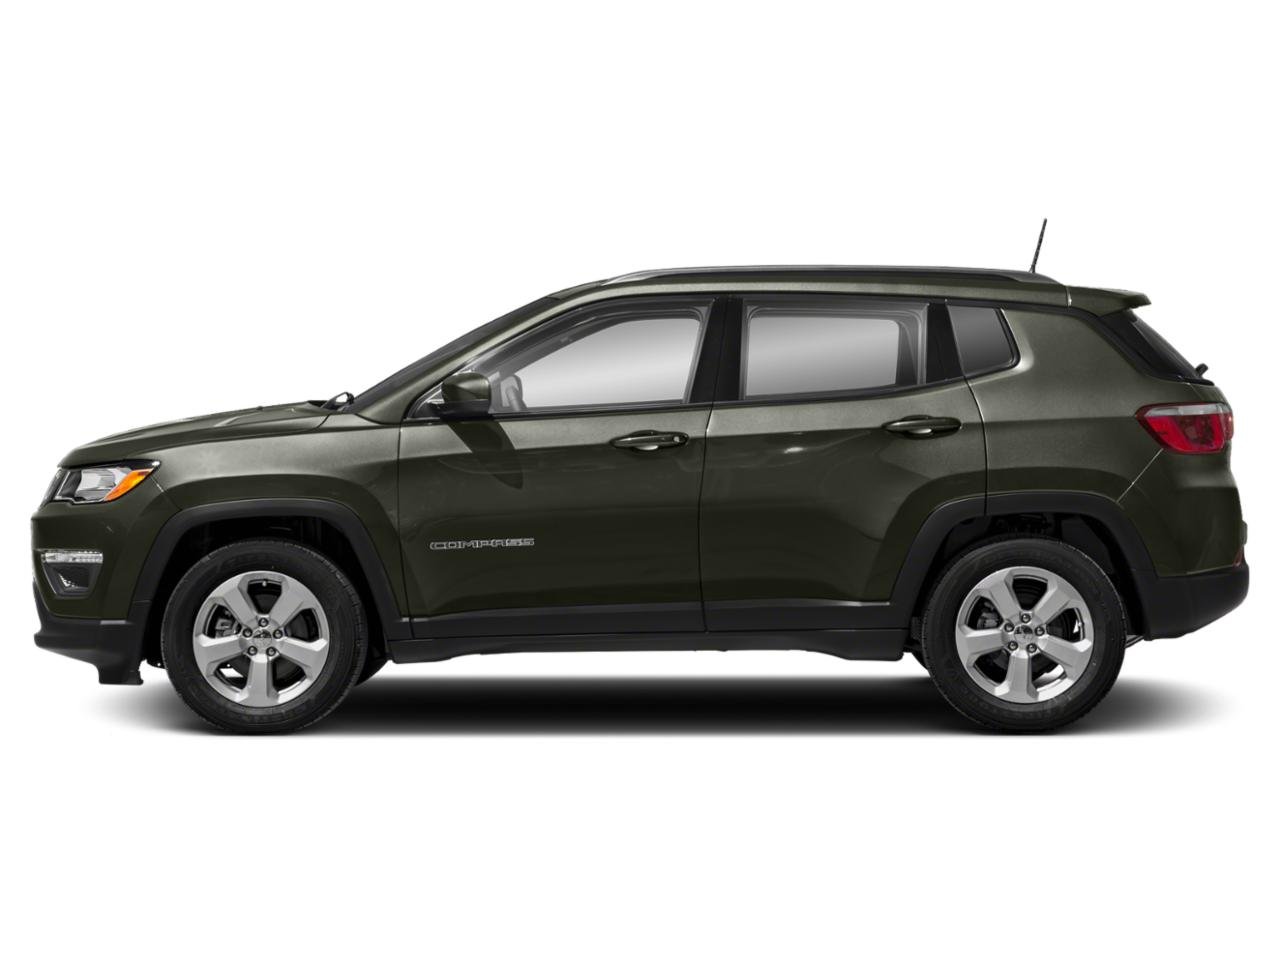 Used 2018 Jeep Compass Limited with VIN 3C4NJDCB2JT177421 for sale in New Prague, Minnesota